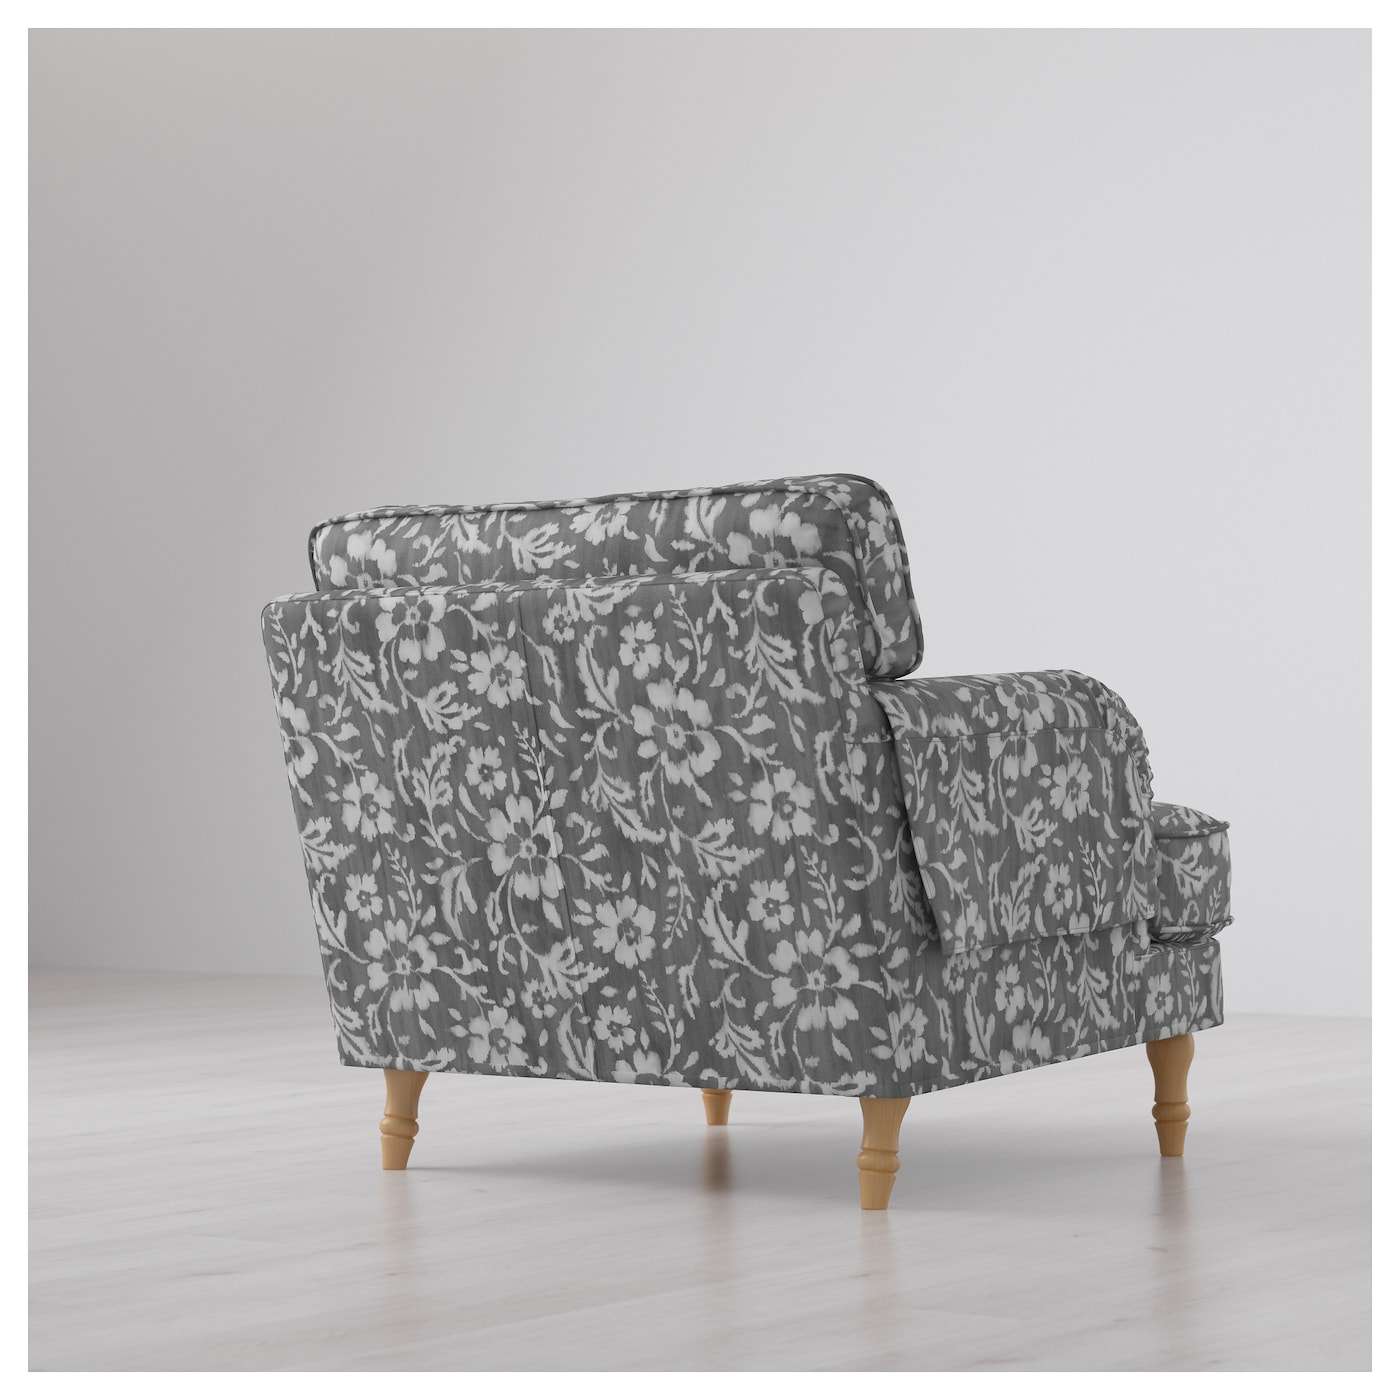 IKEA STOCKSUND armchair 10 year guarantee. Read about the terms in the guarantee brochure.